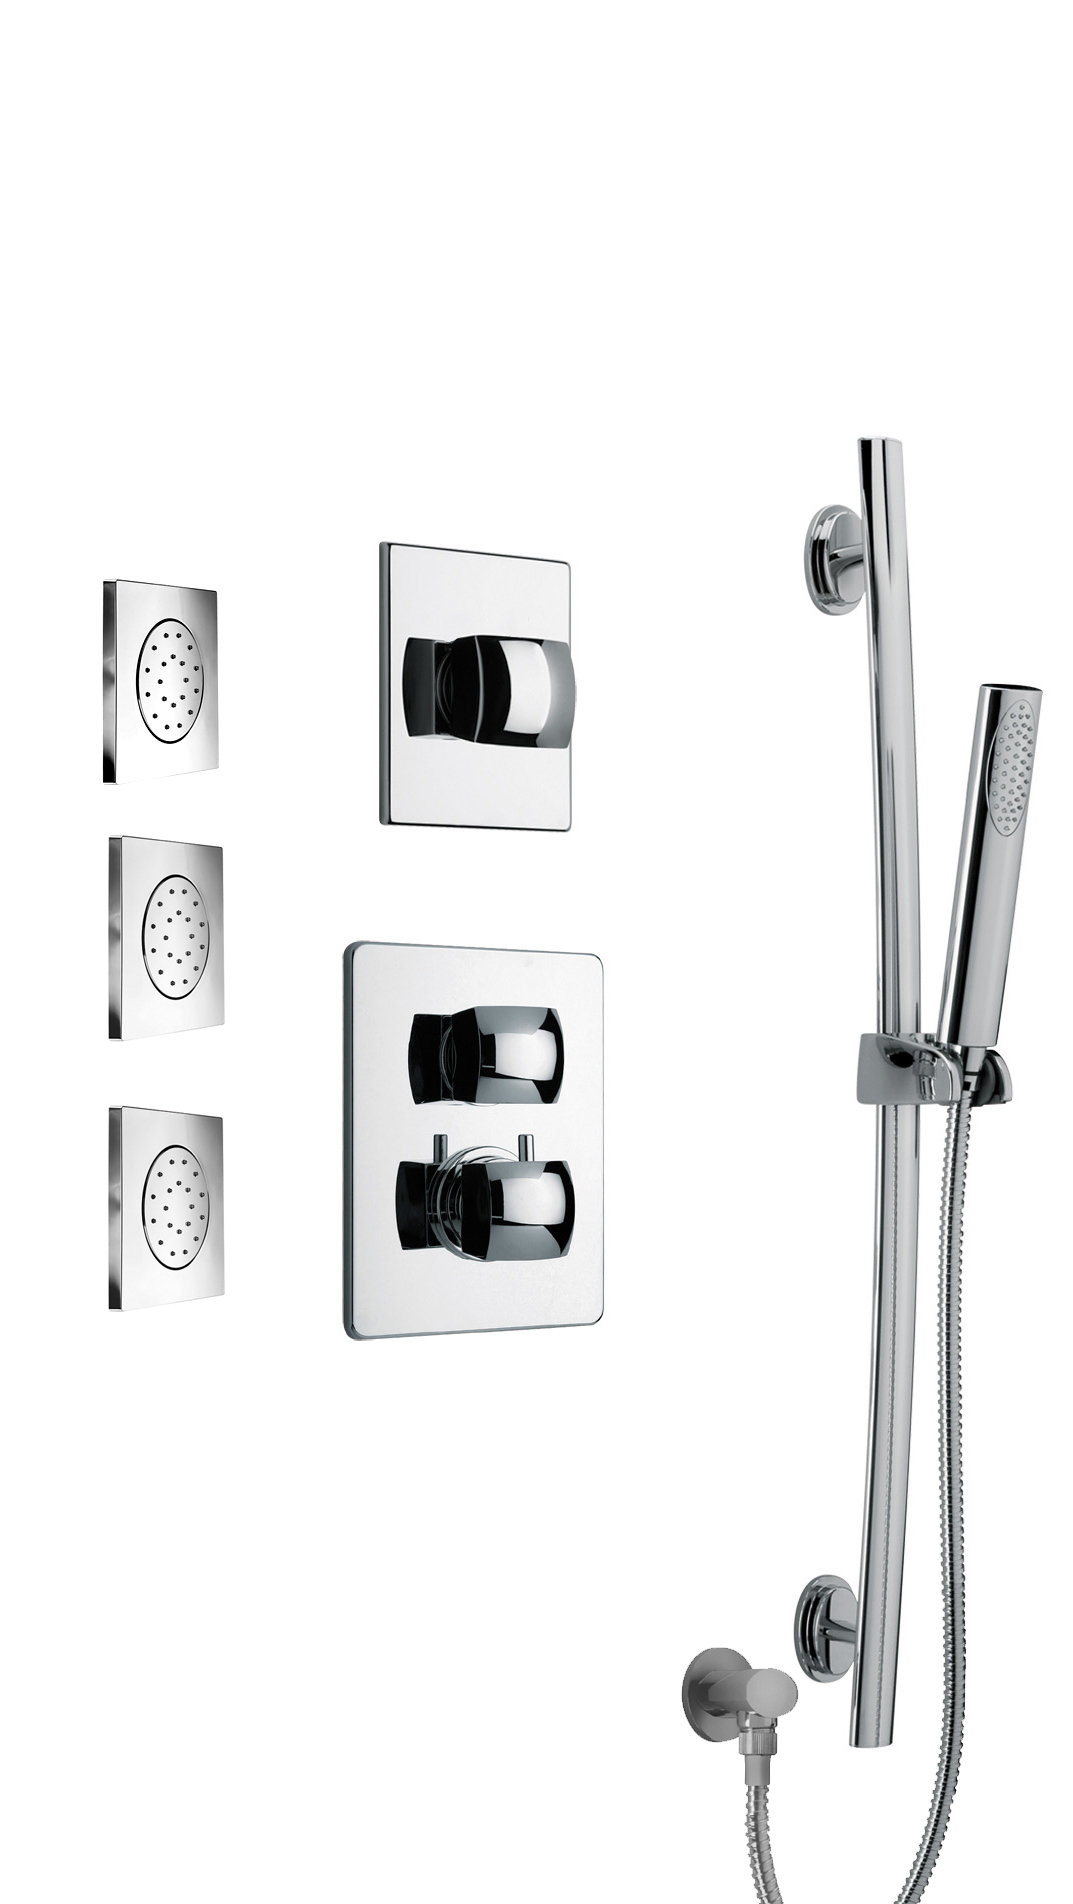 "Thermostatic Shower With 3/4"" Ceramic Disc Volume Control, 3-Way Diverter, Slide Bar, 3 Concealed Body Jets in Chrome Finish"